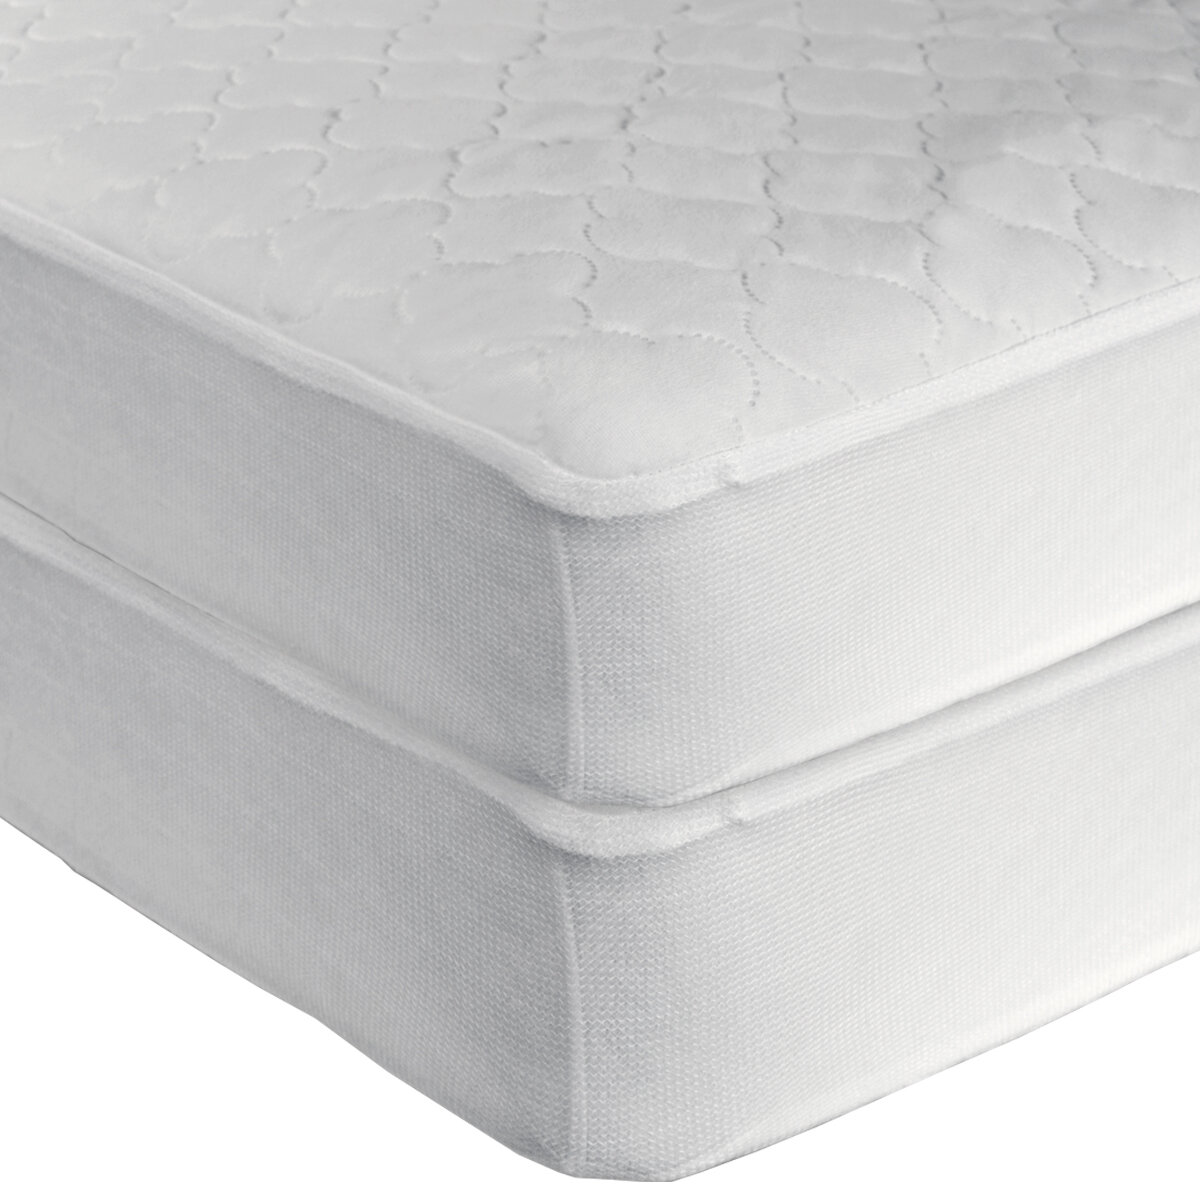 sealy waterproof crib mattress pad & reviews | wayfair